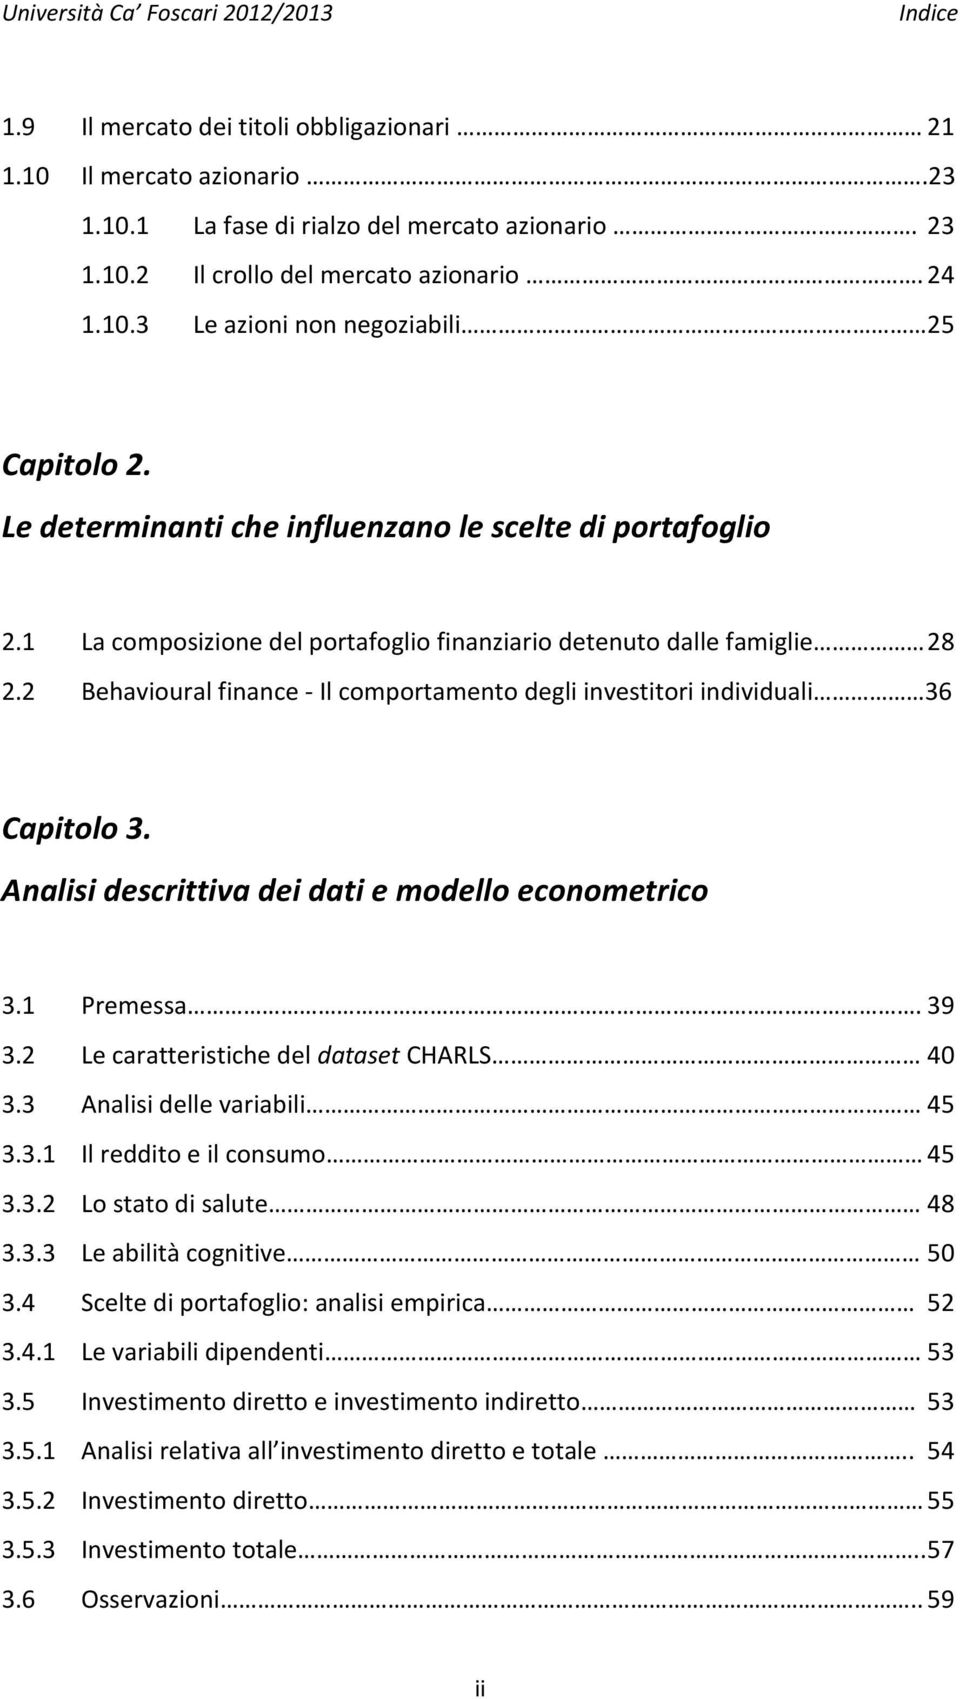 2 Behavioural finance - Il comportamento degli investitori individuali 36 Capitolo 3. Analisi descrittiva dei dati e modello econometrico 3.1 Premessa. 39 3.